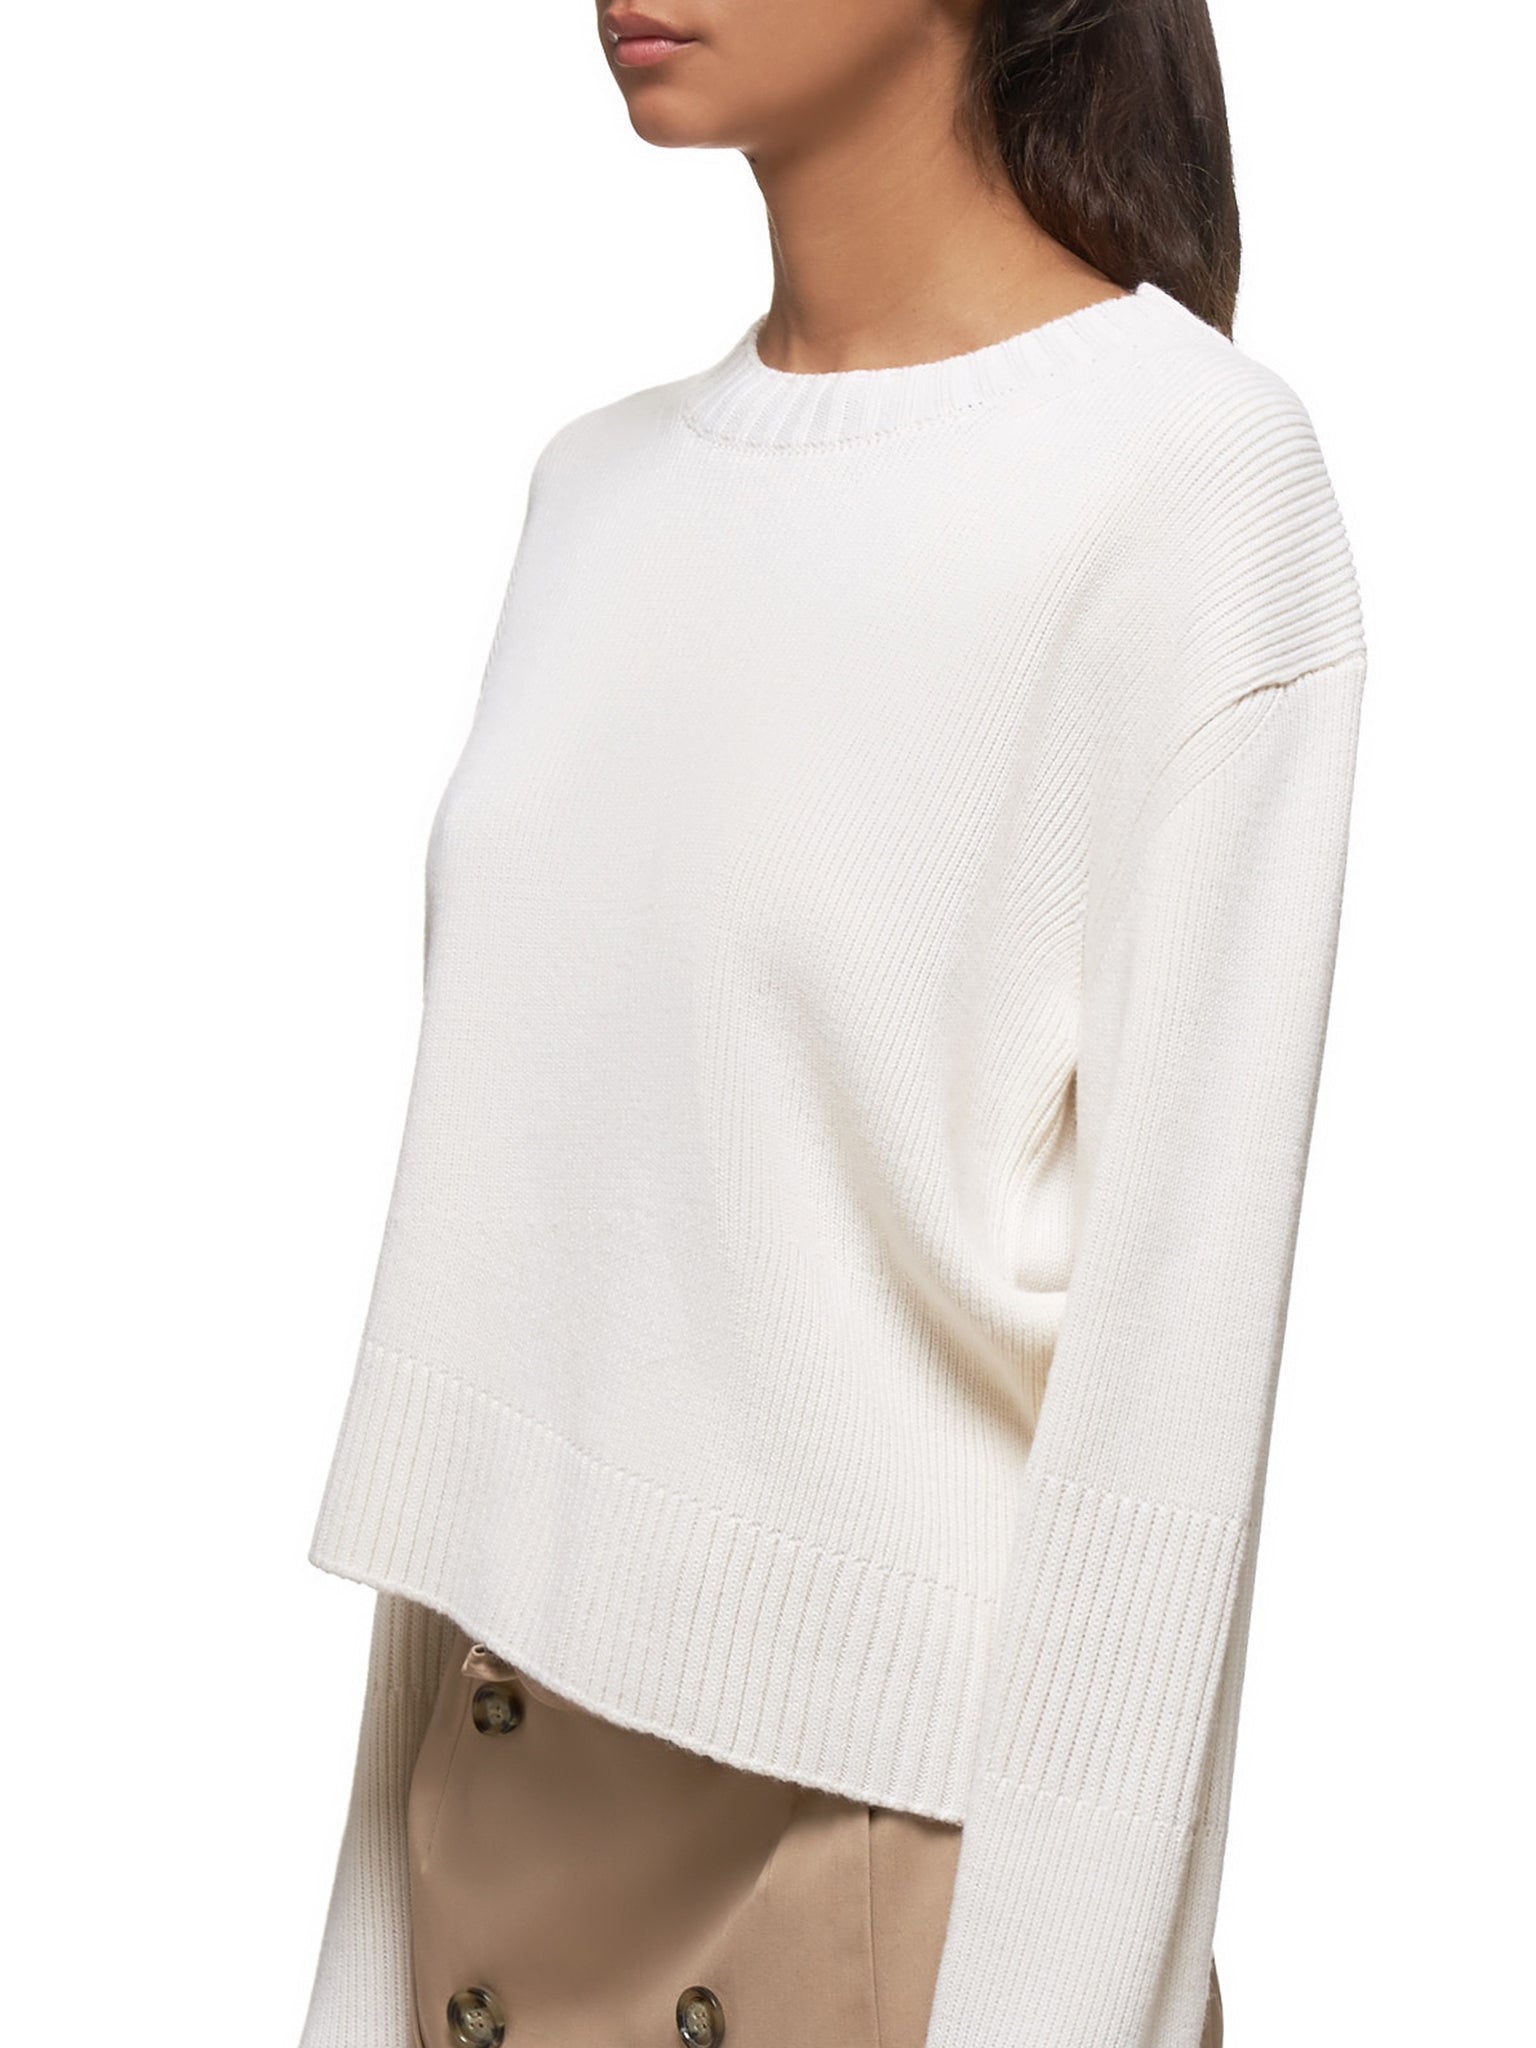 Bottega Veneta Sweater - Hlorenzo Detail 1